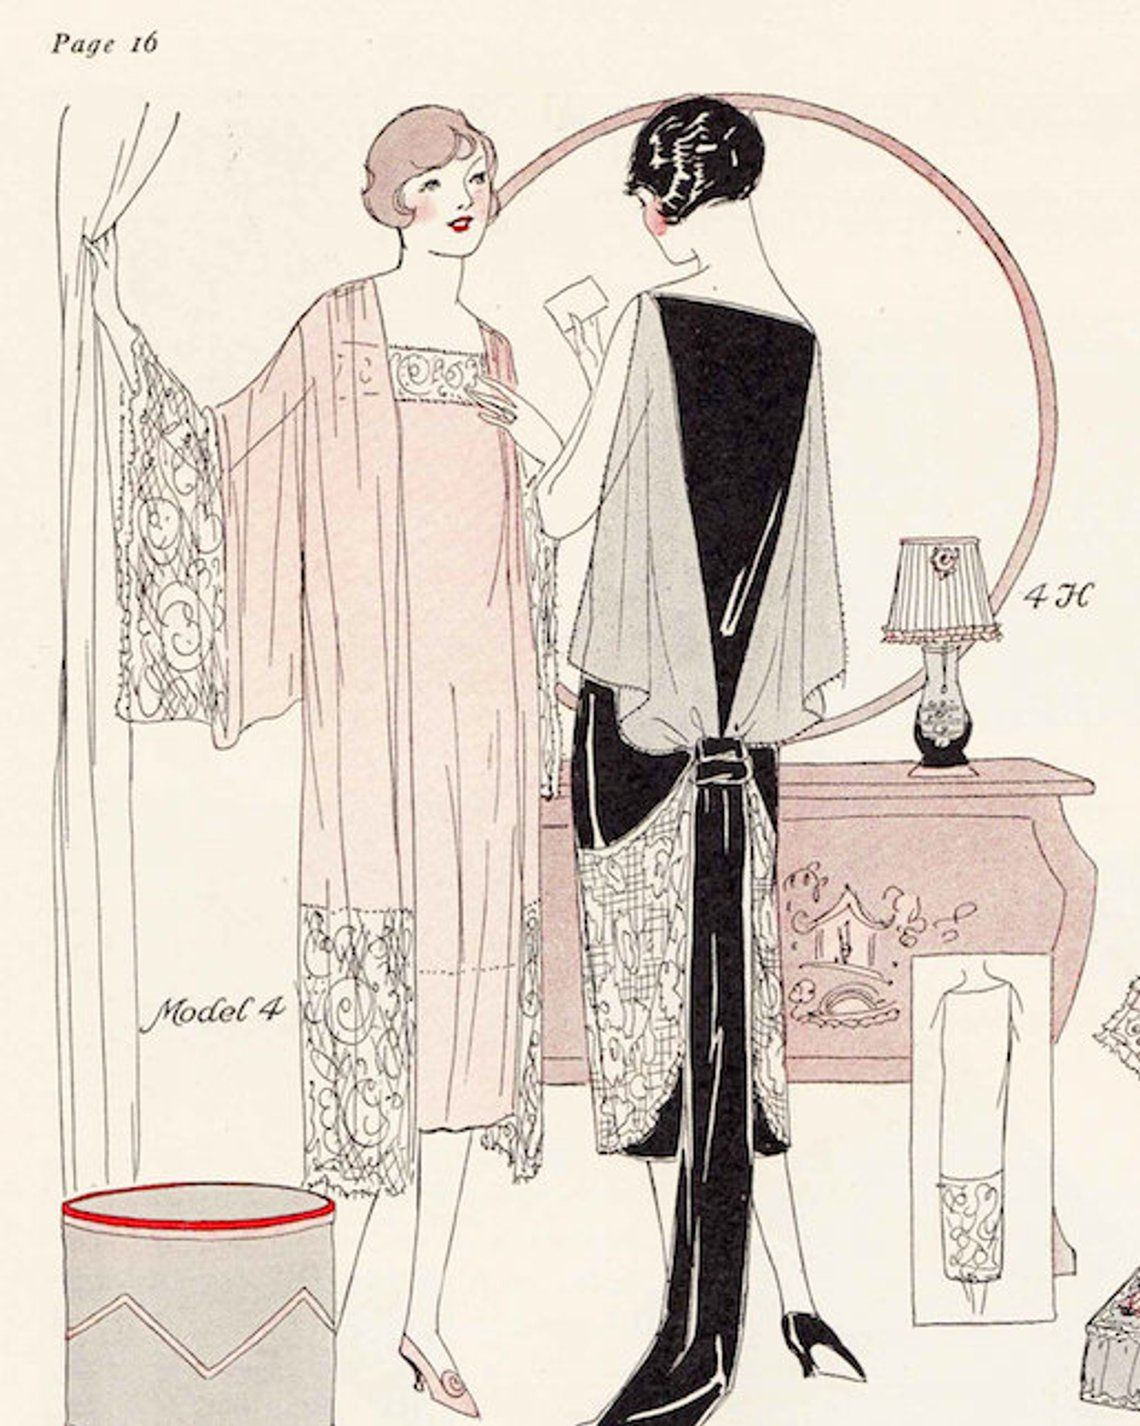 Vintage Sewing Book Winter 1925 - 1926 Fashion Service Magazine Dressmaking Ebook Featuring Hats, Dresses and Lingerie -INSTANT DOWNLOAD-